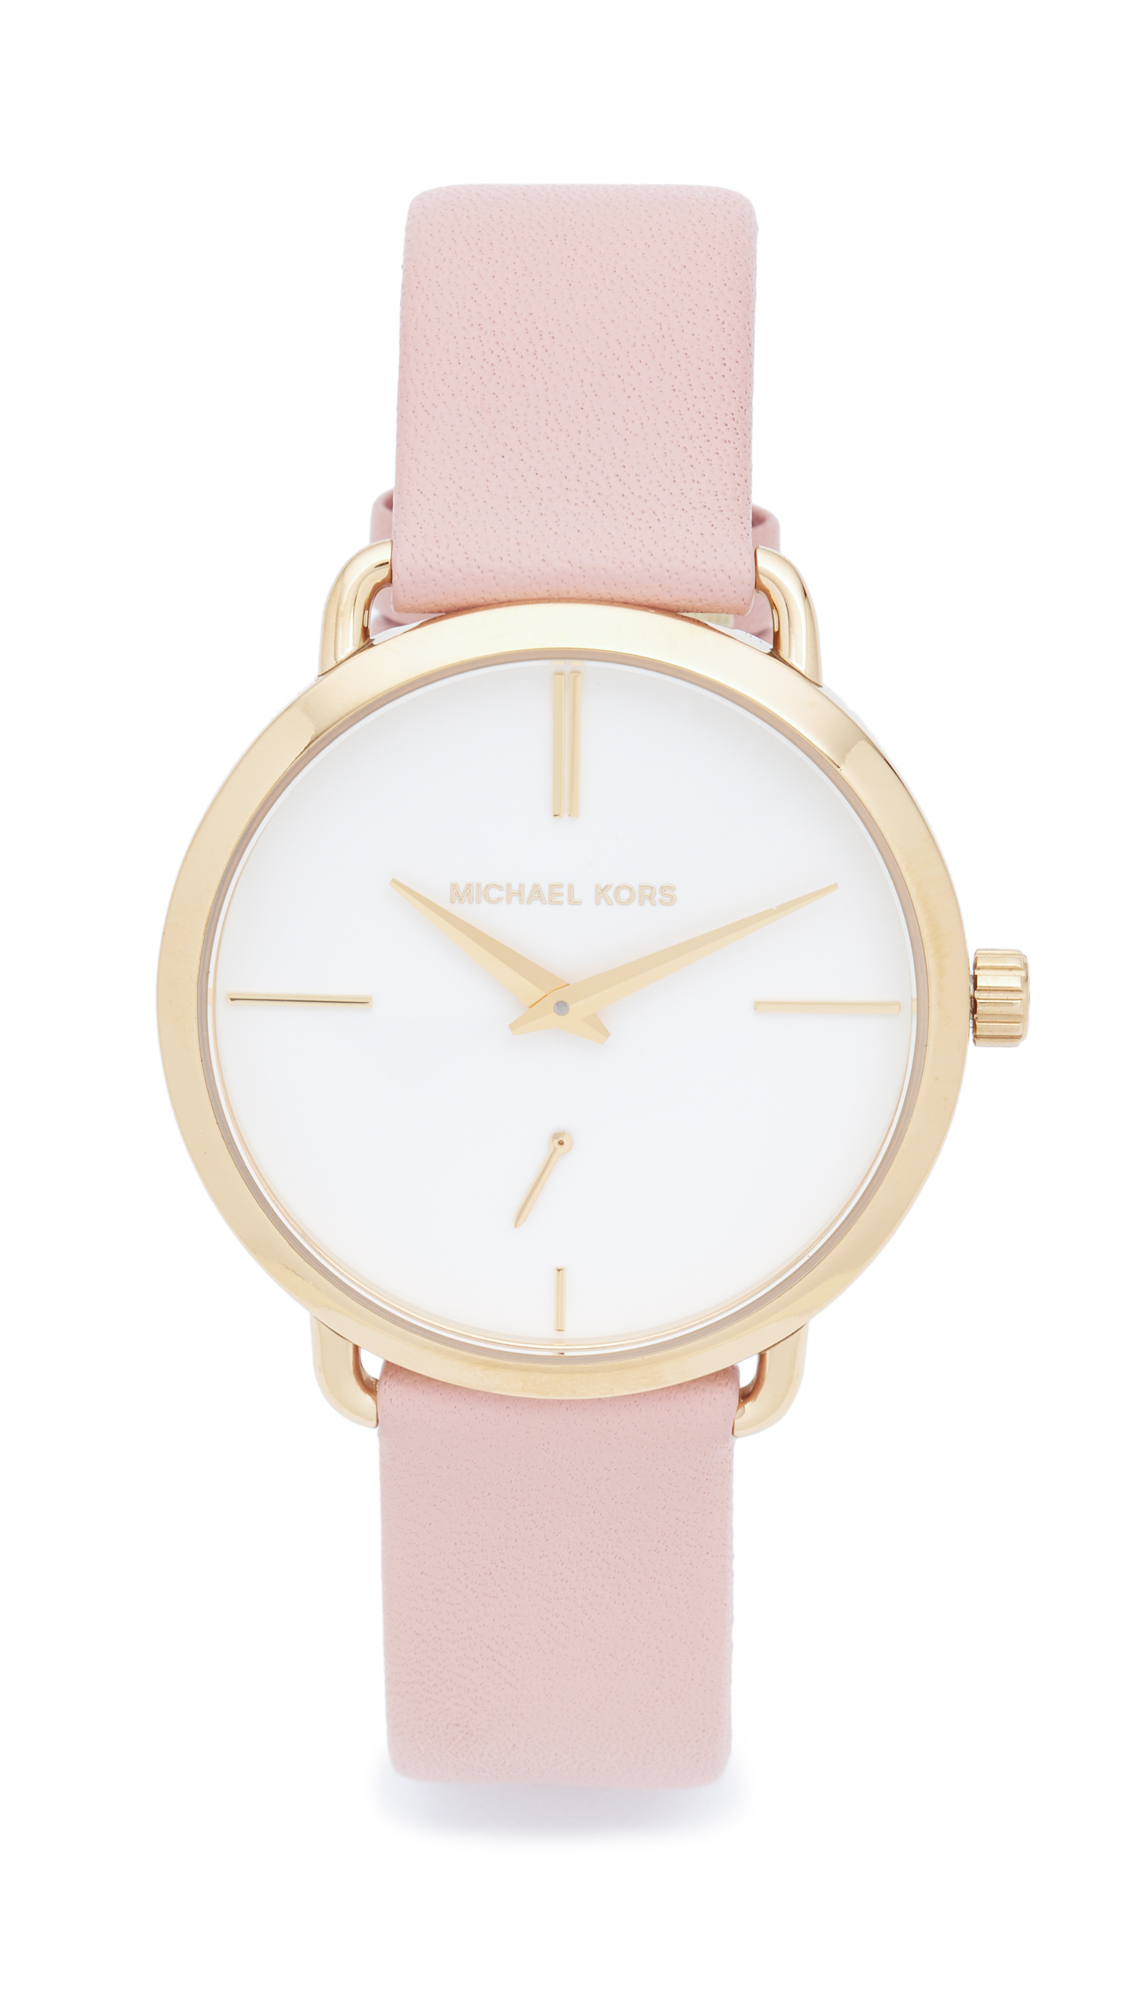 michael kors female michael kors partia leather watch goldwhiteblush